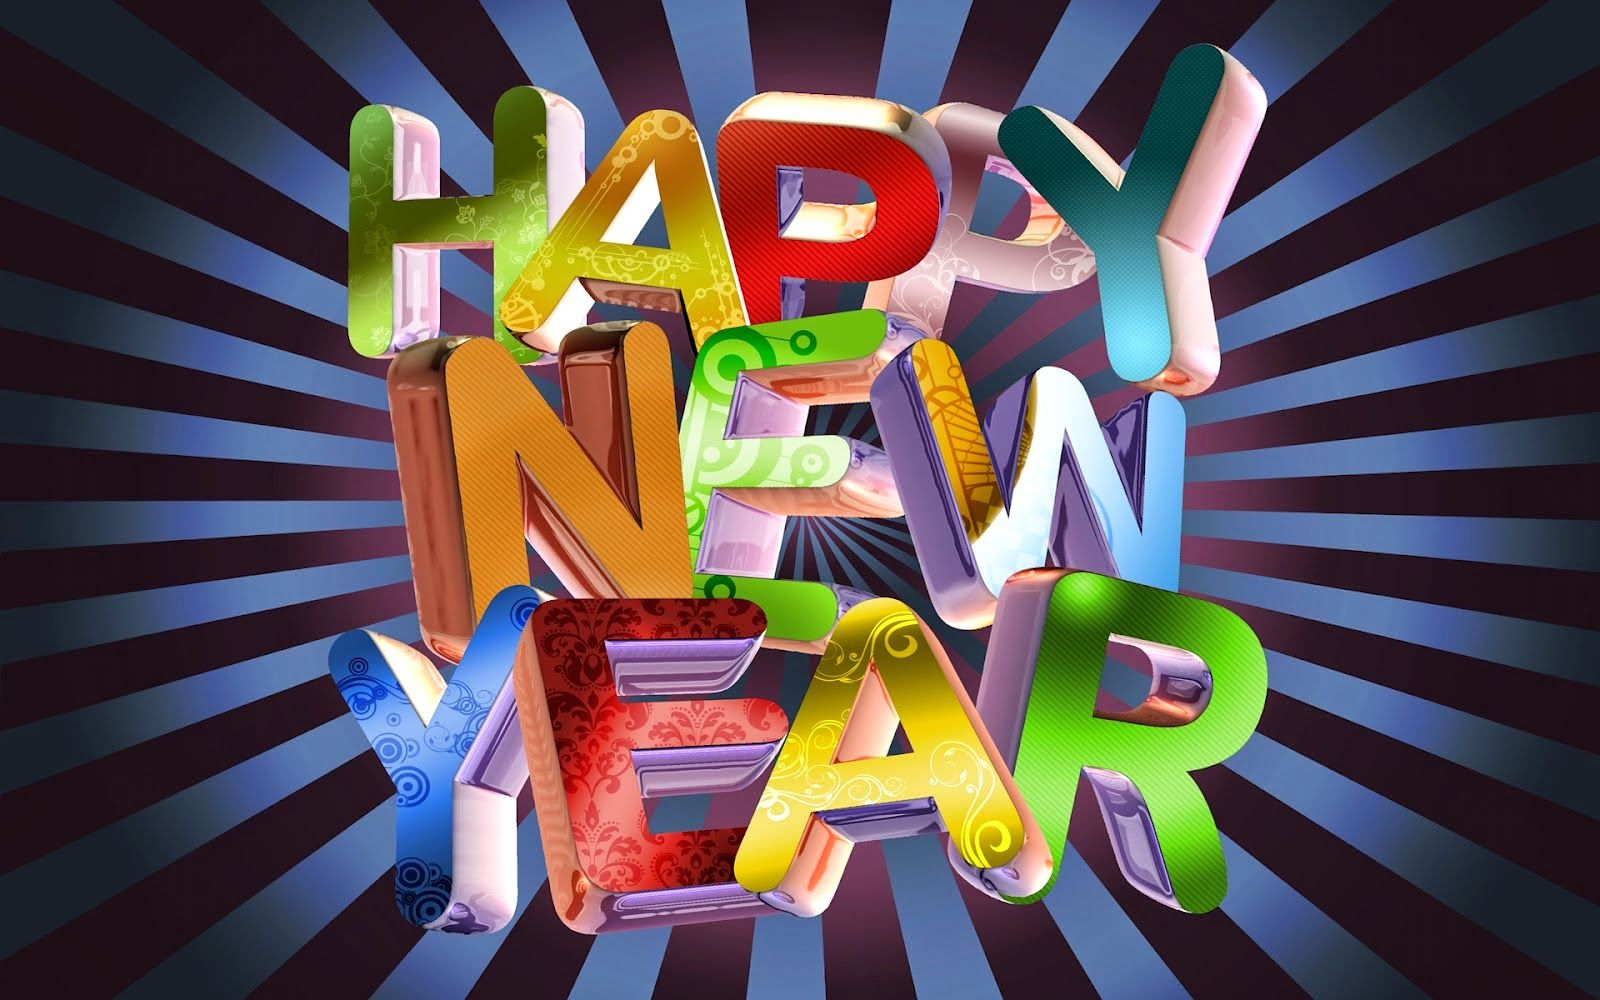 Wallpaper download hd 2017 - New Year 2017 Pictures Http Www Welcomehappynewyear2016 Com New